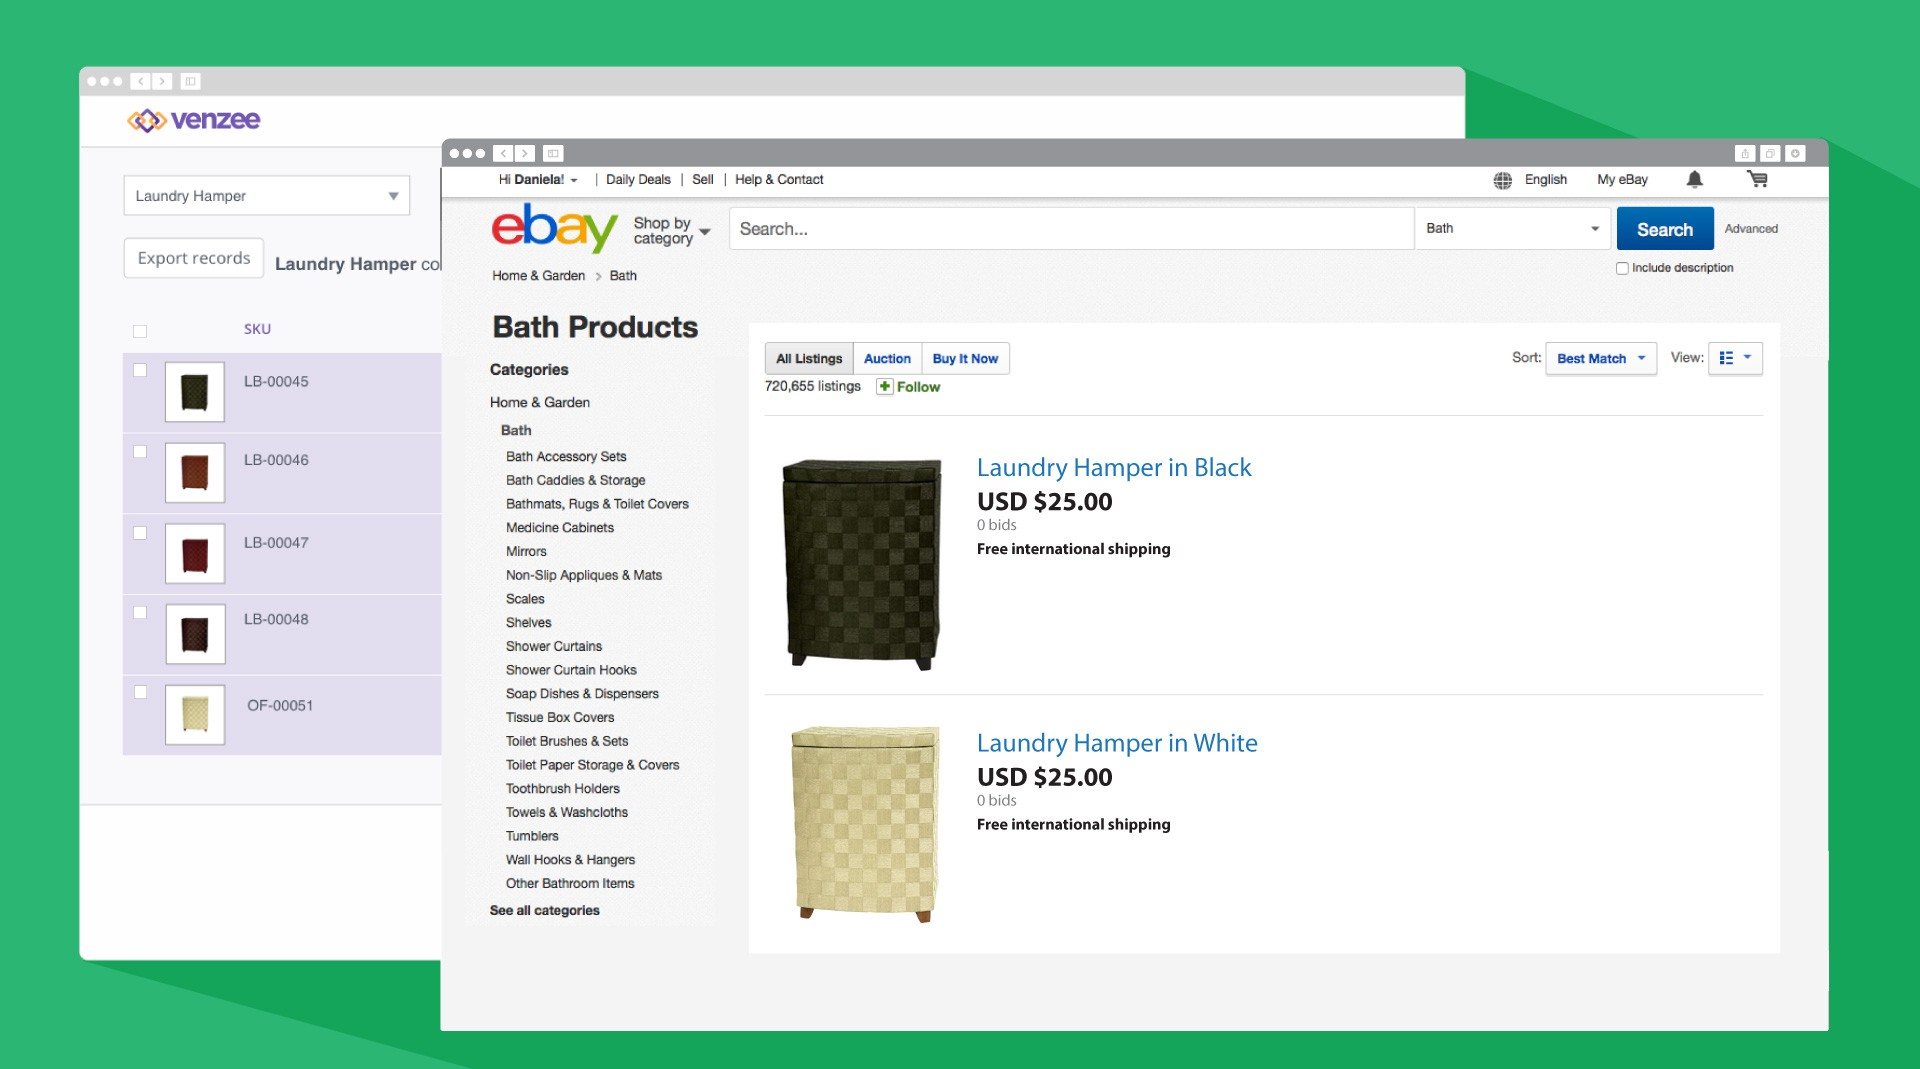 Fewer Spreadsheets For Ebay Selling Manager Pro By Kate Hiscox Venzee Medium